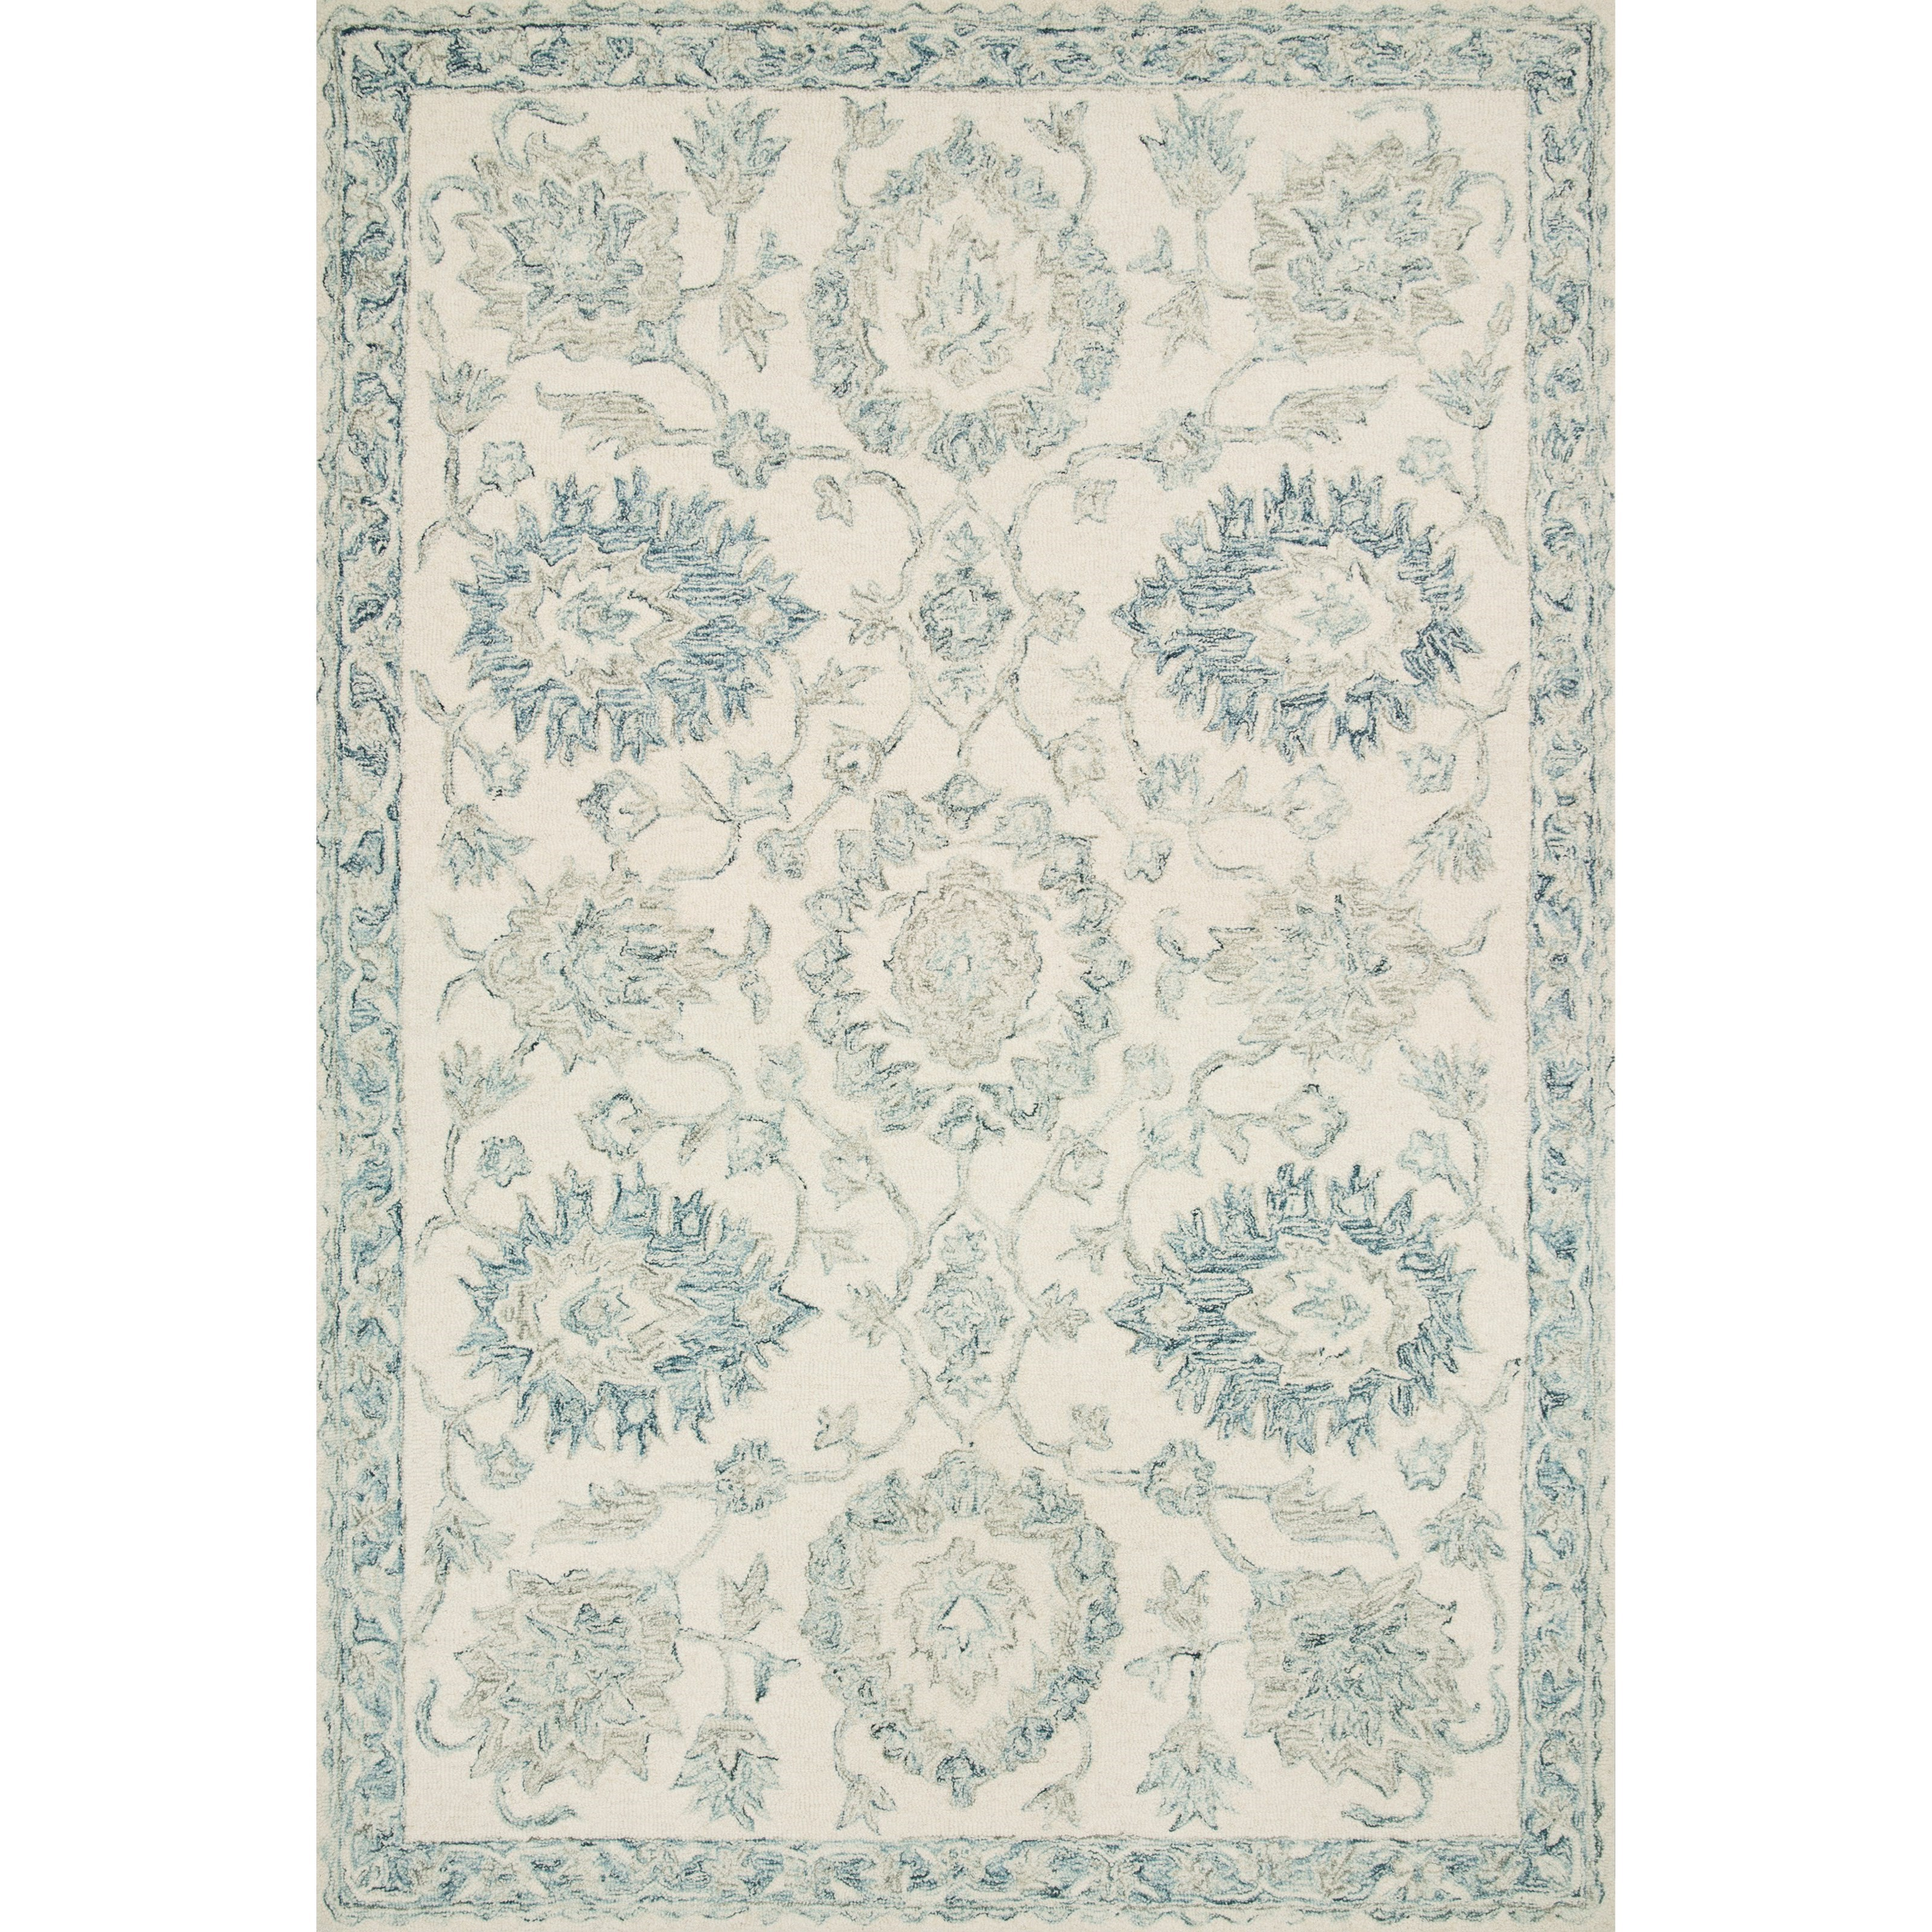 """Norabel 3'6"""" x 5'6"""" Ivory / Blue Rug by Loloi Rugs at Virginia Furniture Market"""